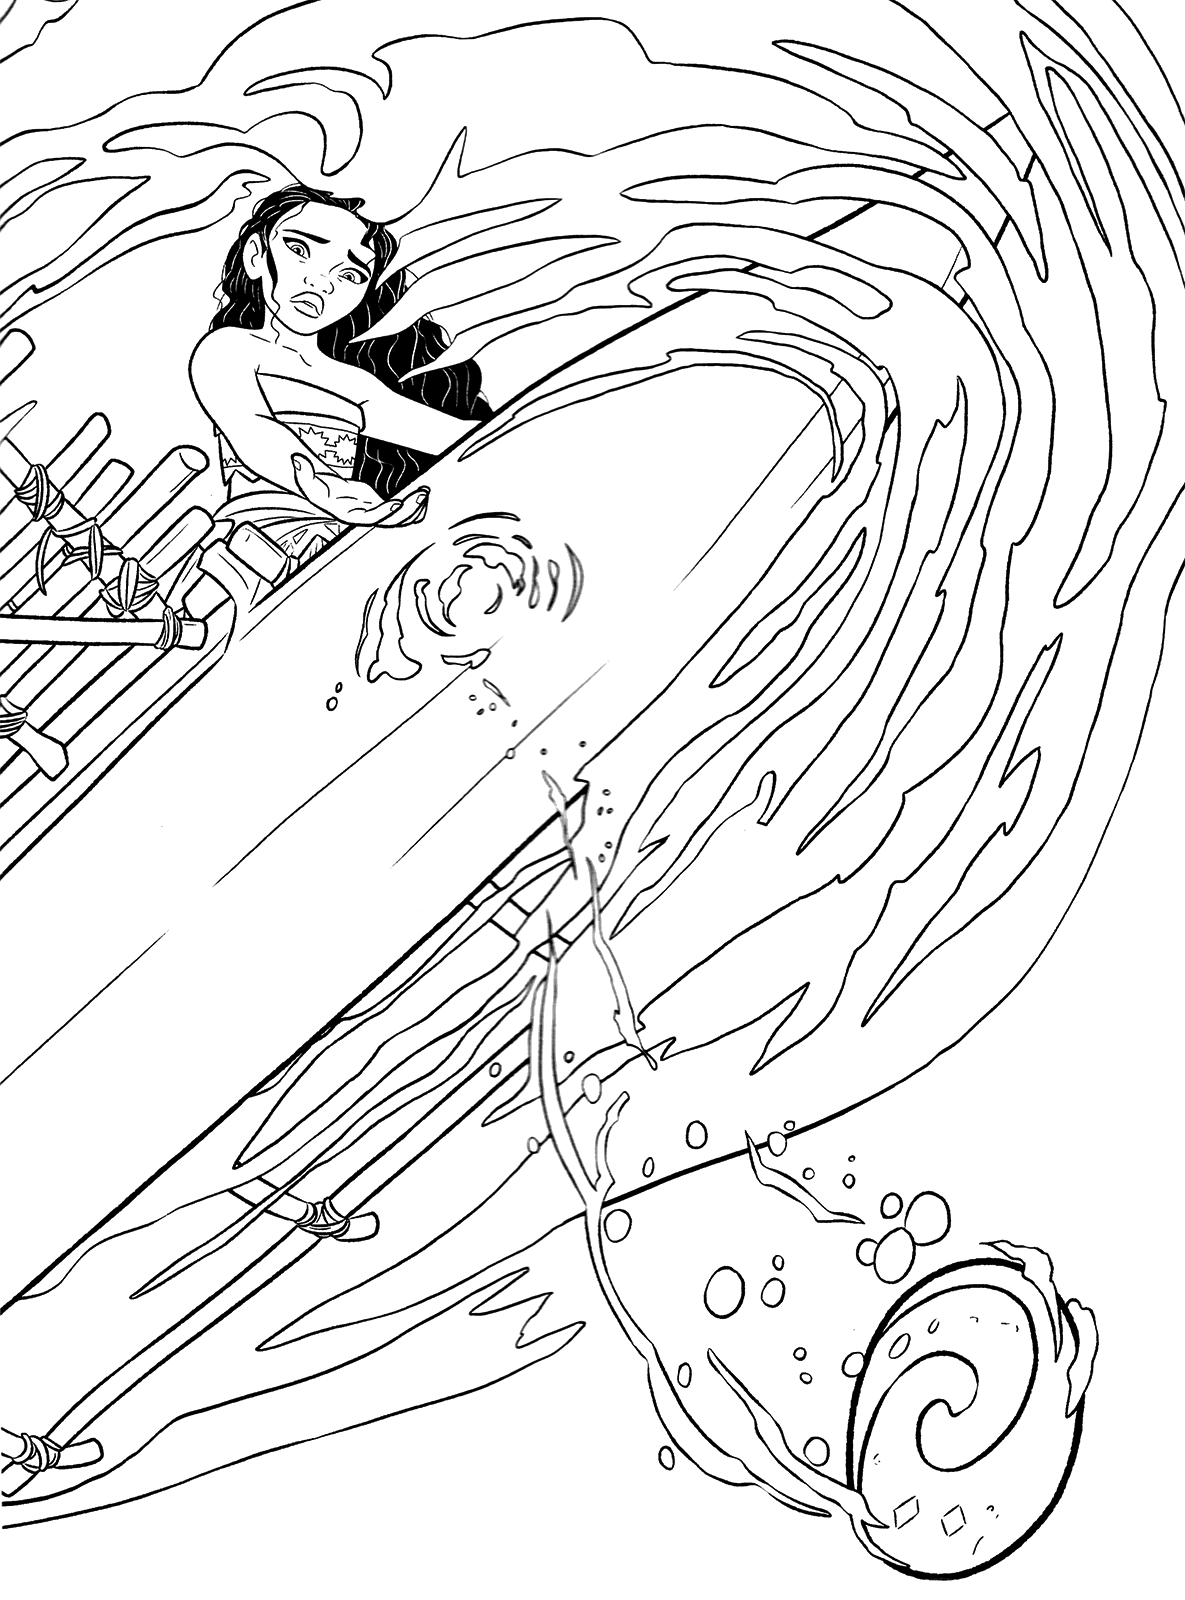 print moana coloring pages moana coloring pages free printables from disney coloring moana pages print